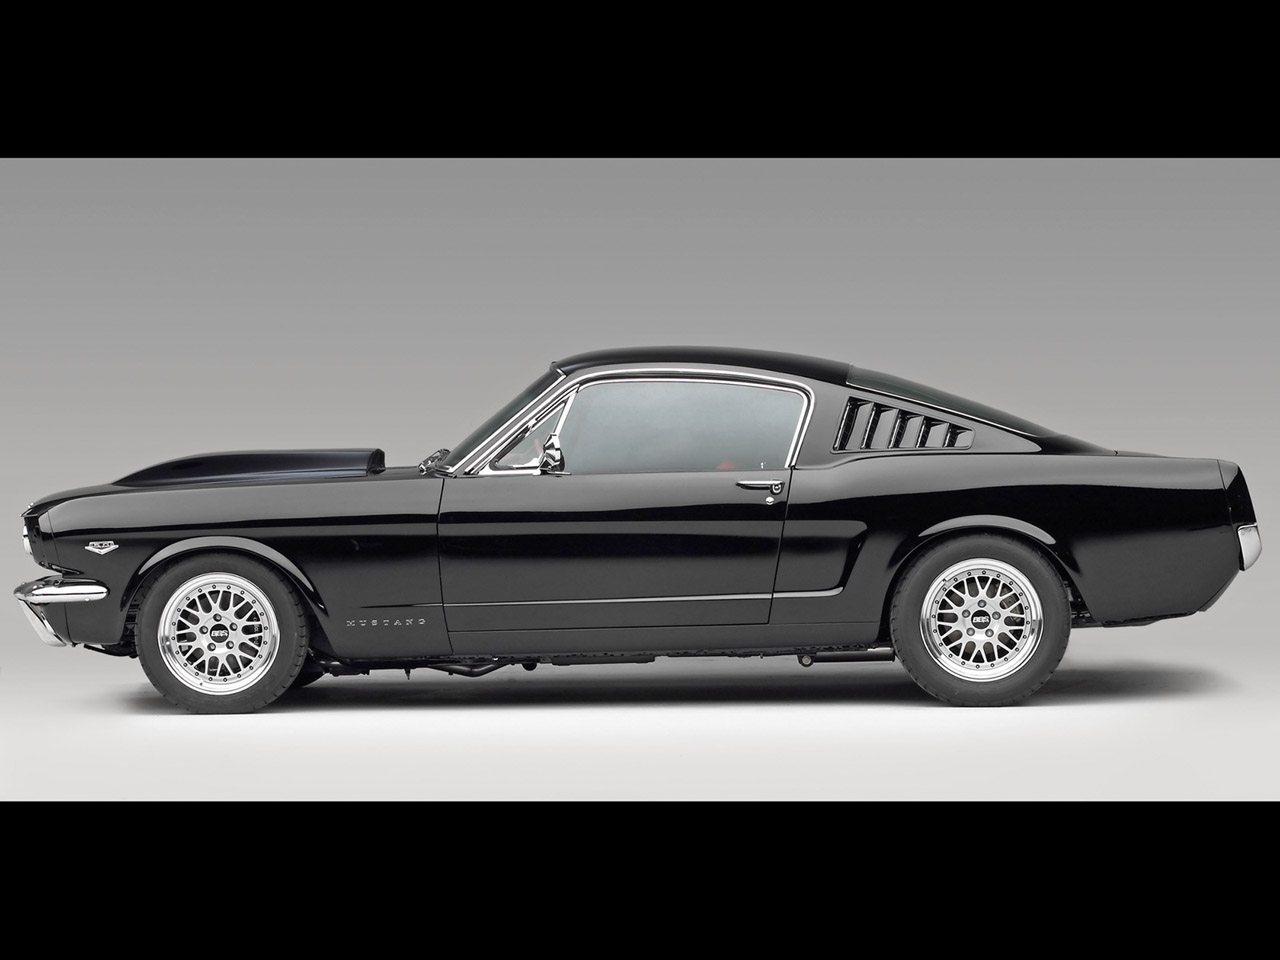 1965 Ford Mustang Fastback Wallpaper HD For Android